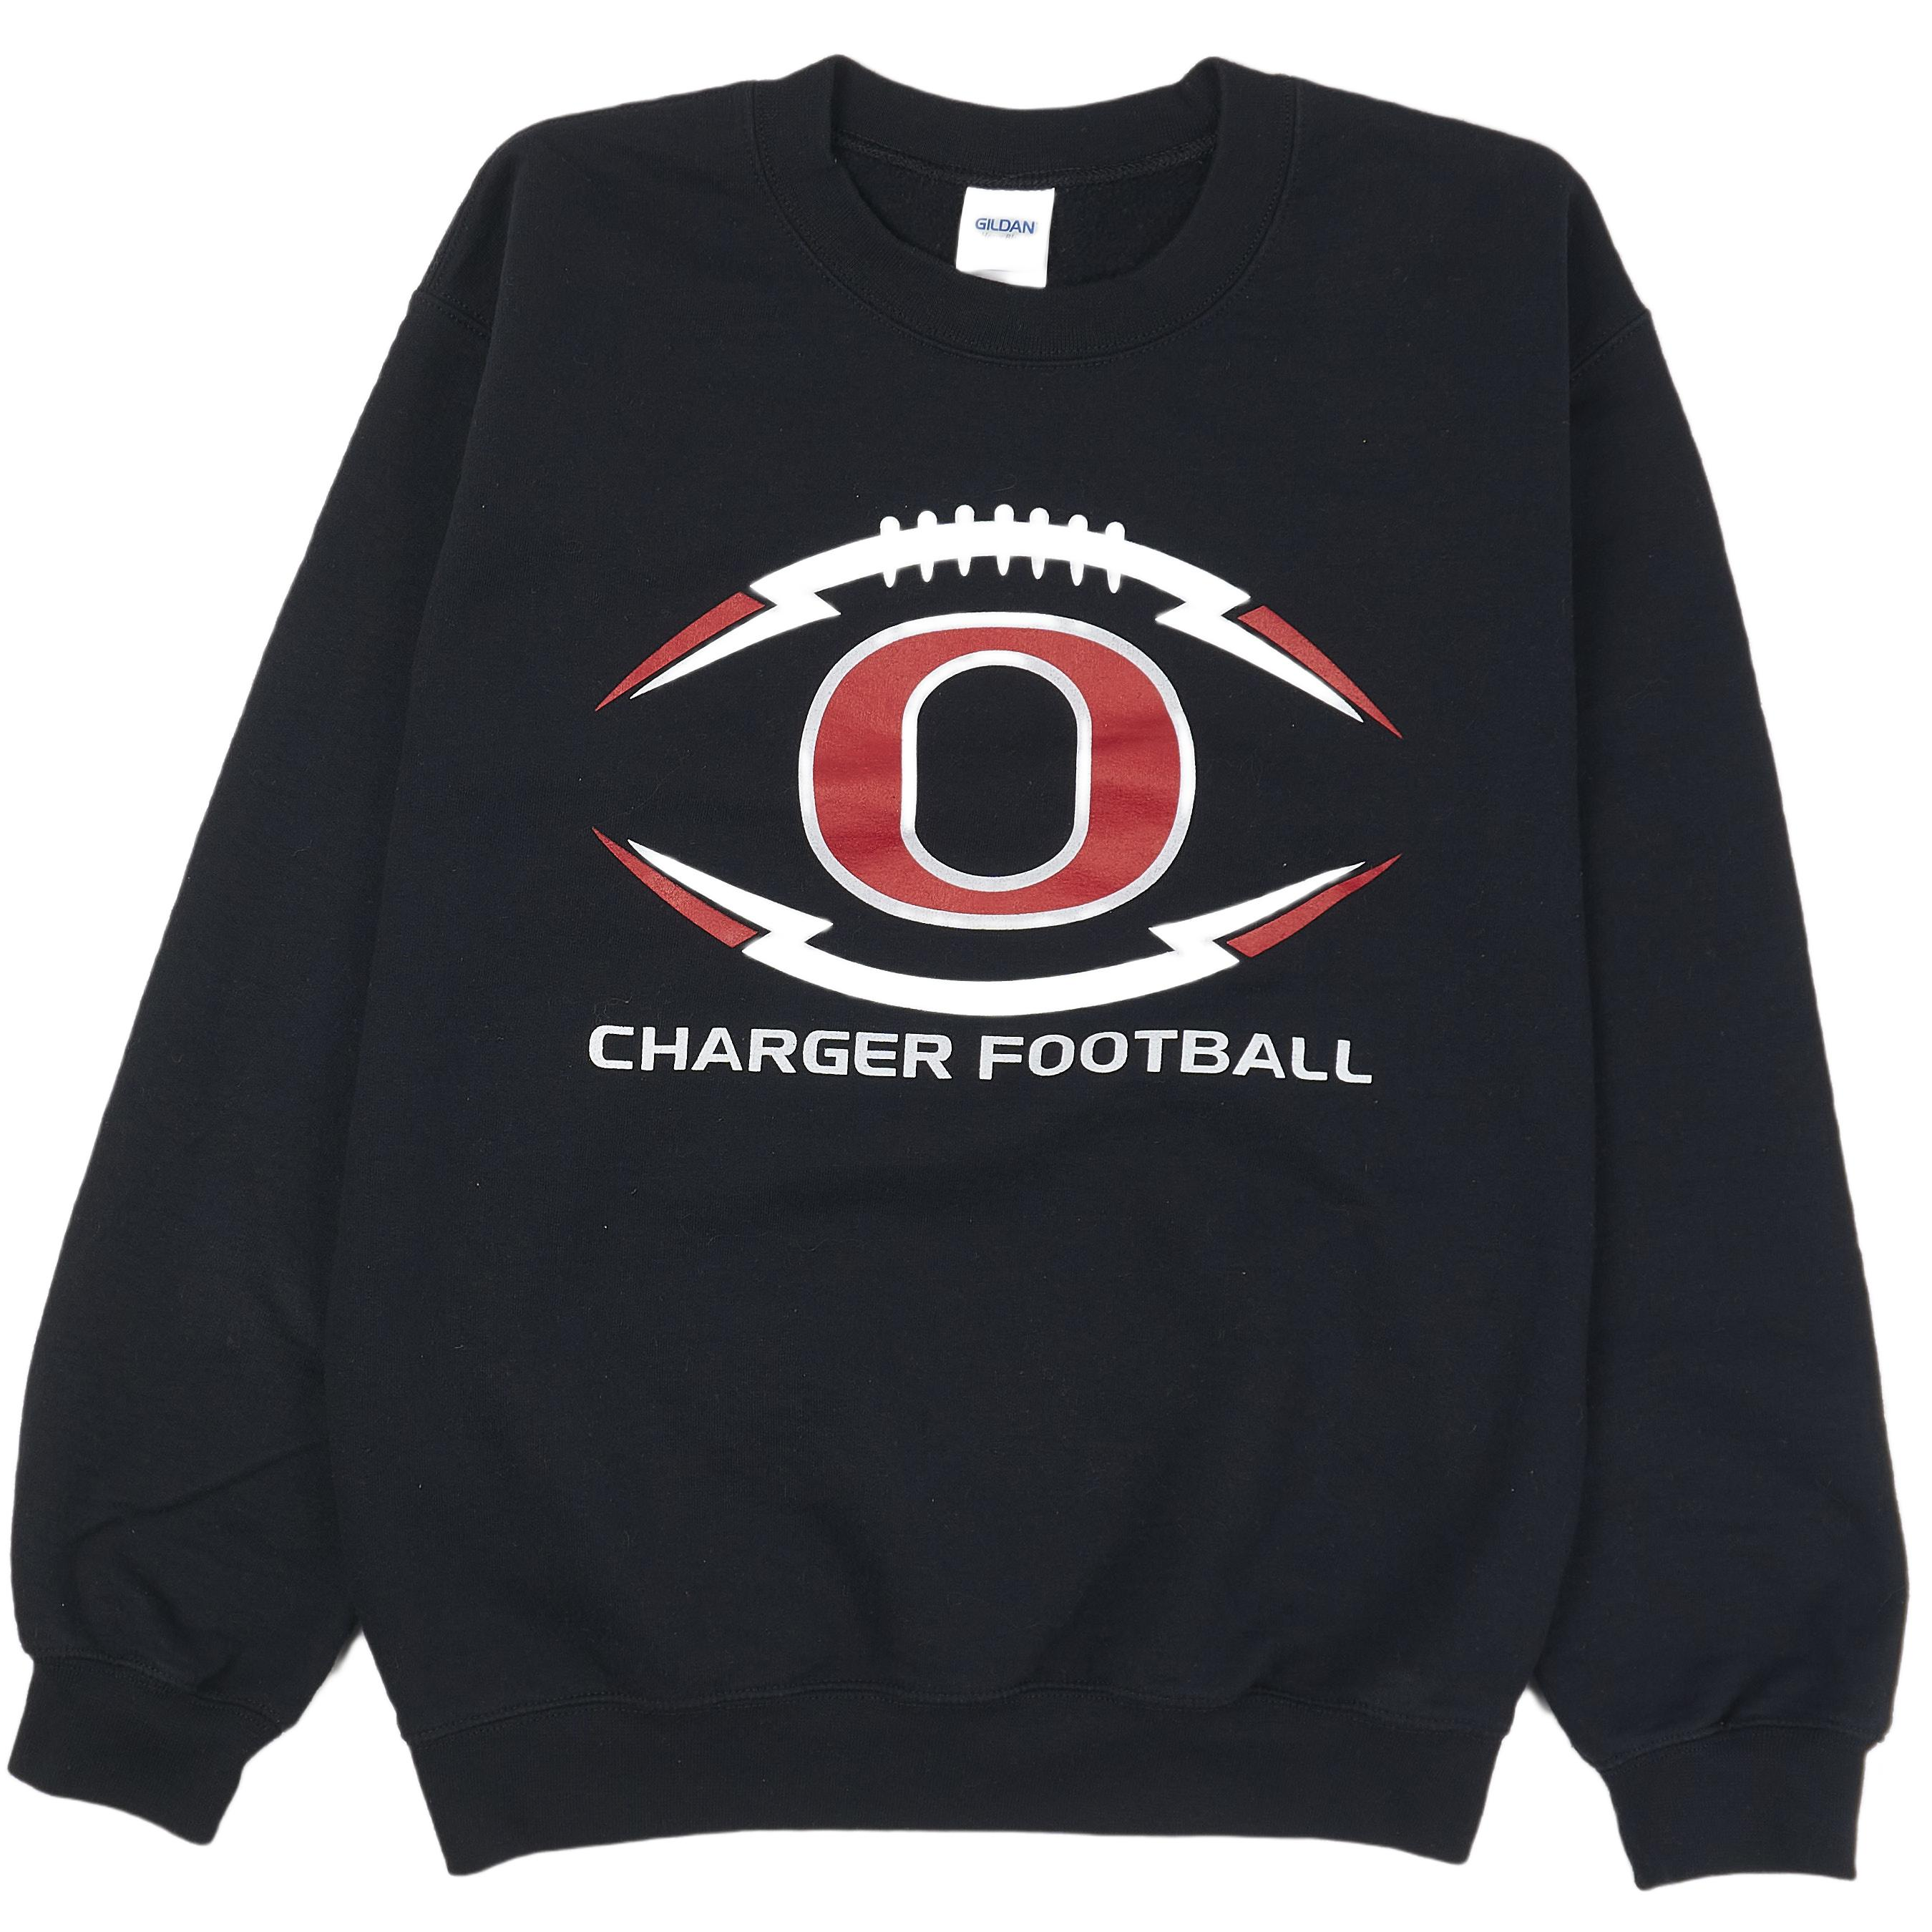 Charger Football Crewneck Sweatshirt